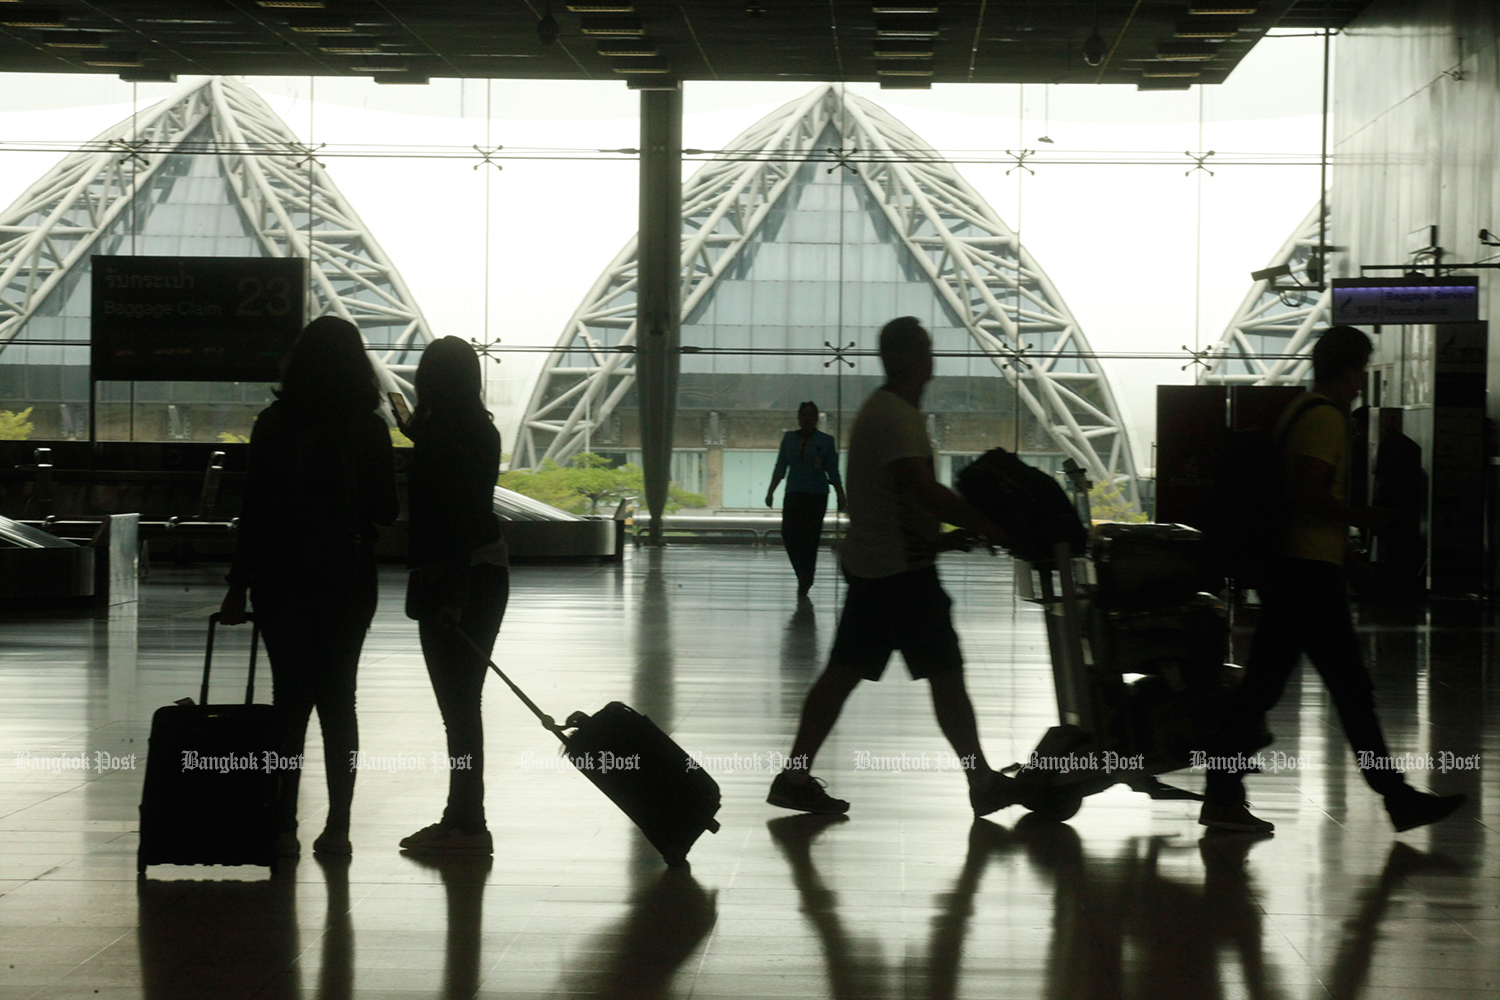 More than 150,000 foreign nationals need to have their tourist visas renewed by Sept 26, according to the Immigration Bureau.